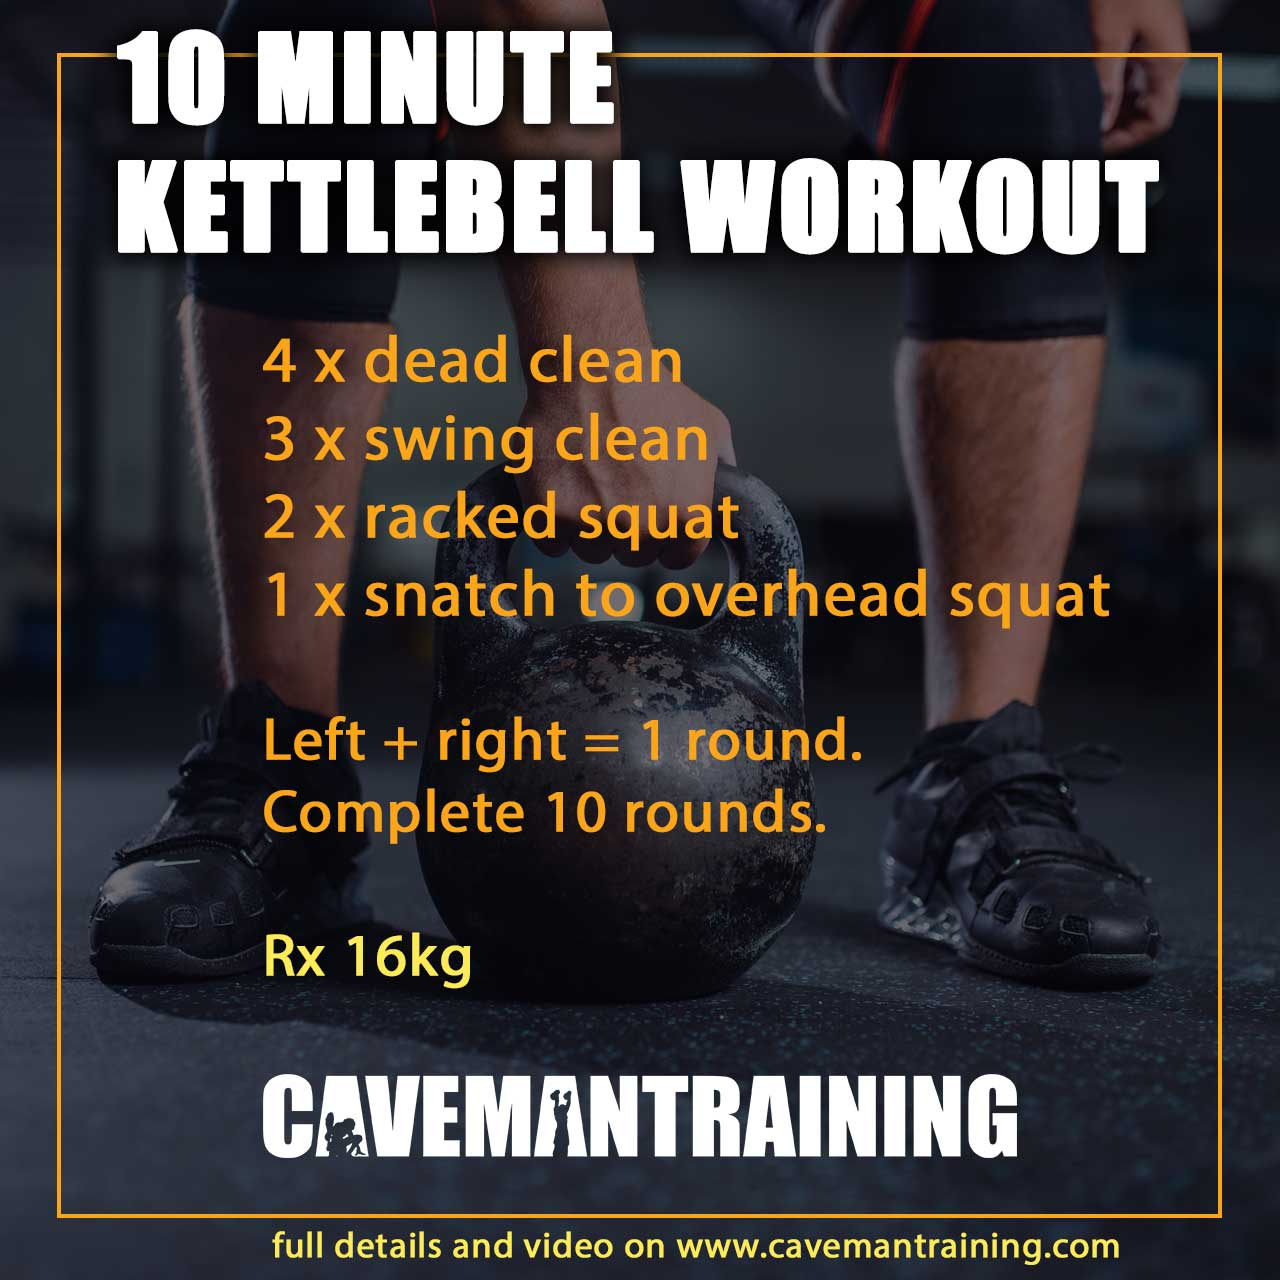 10 minute kettlebell workouts